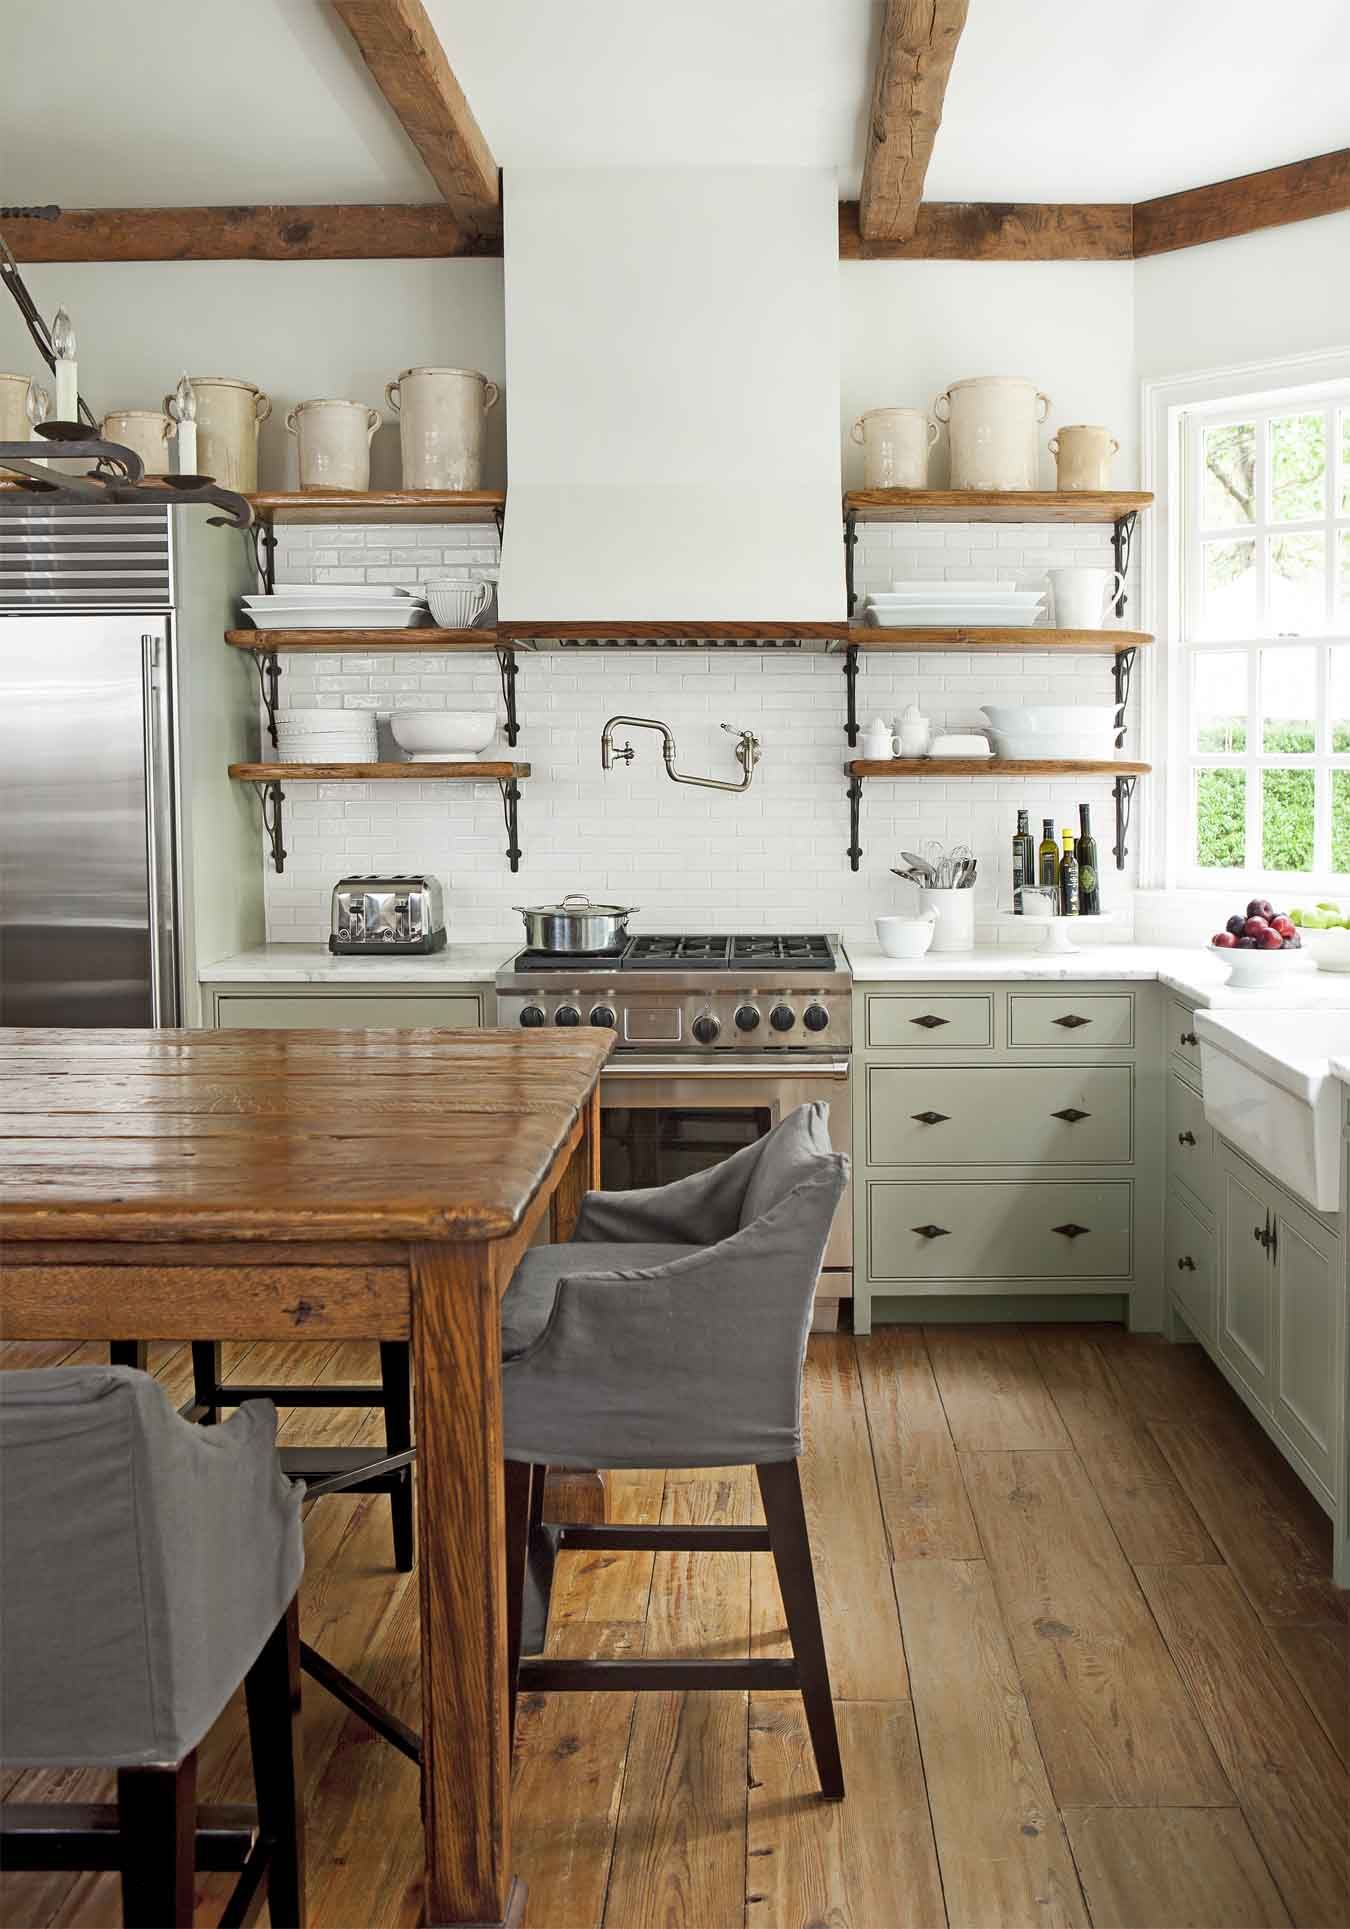 24 creative color ideas for your next kitchen reno with on best farmhouse kitchen decor ideas and remodel create your dreams id=62008